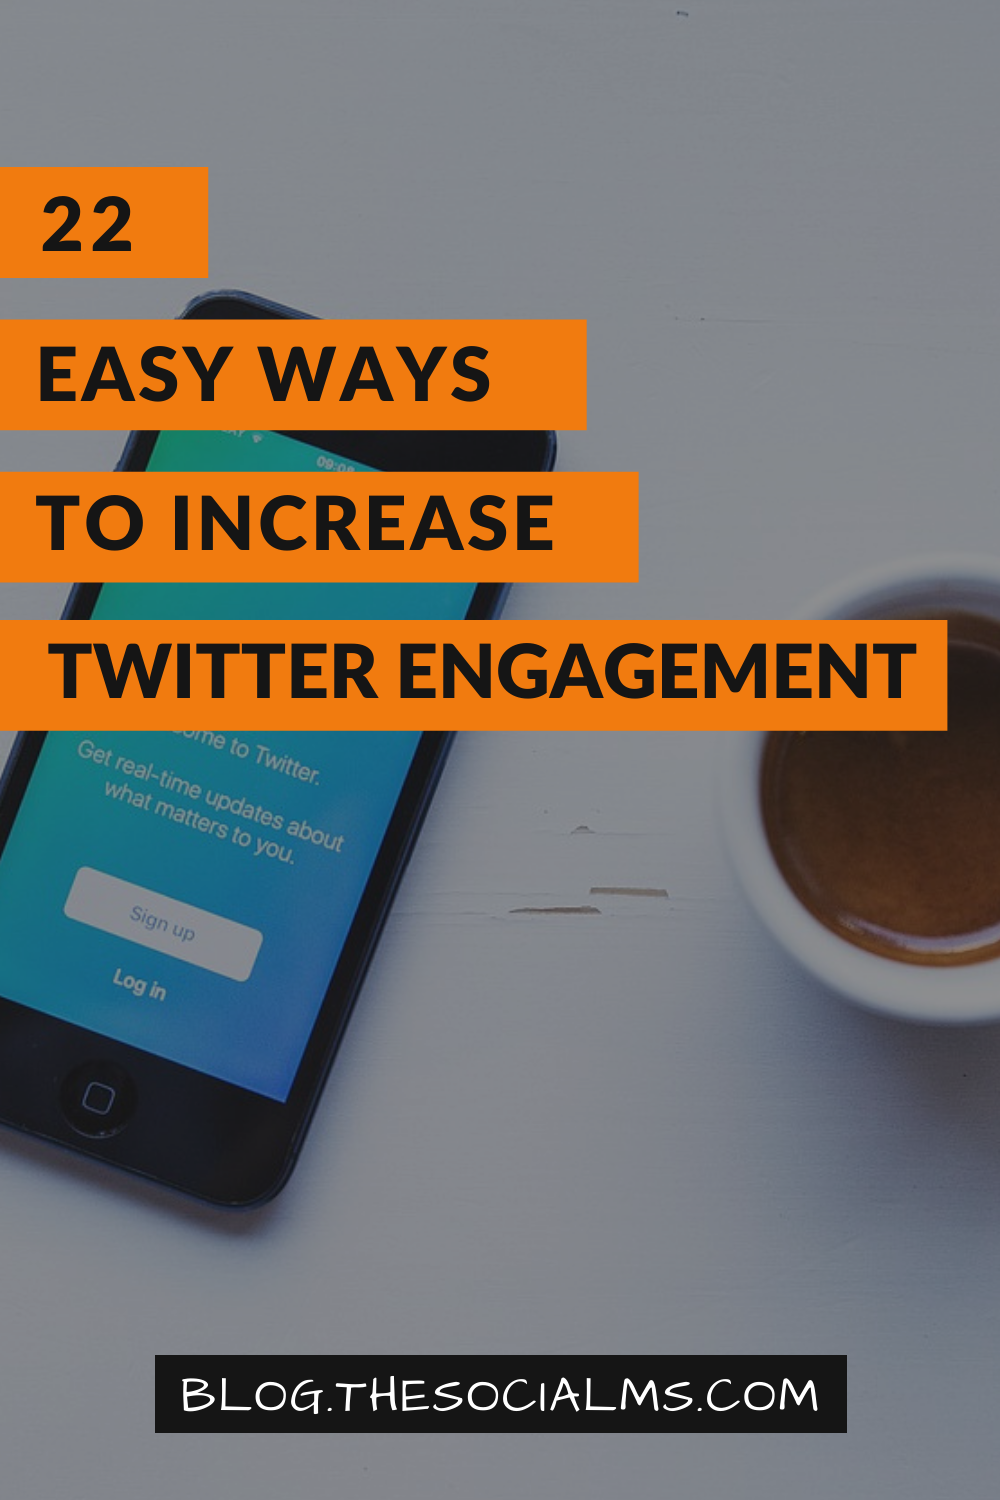 Engagement is crucial for social media marketing success. Engagement helps you build your relationship and trust with your social media followers. It makes you stand out and adds personality. Here is how to increase your Twitter engagement #twitter #socialmedia #socialmediamarketing #socialmediatips